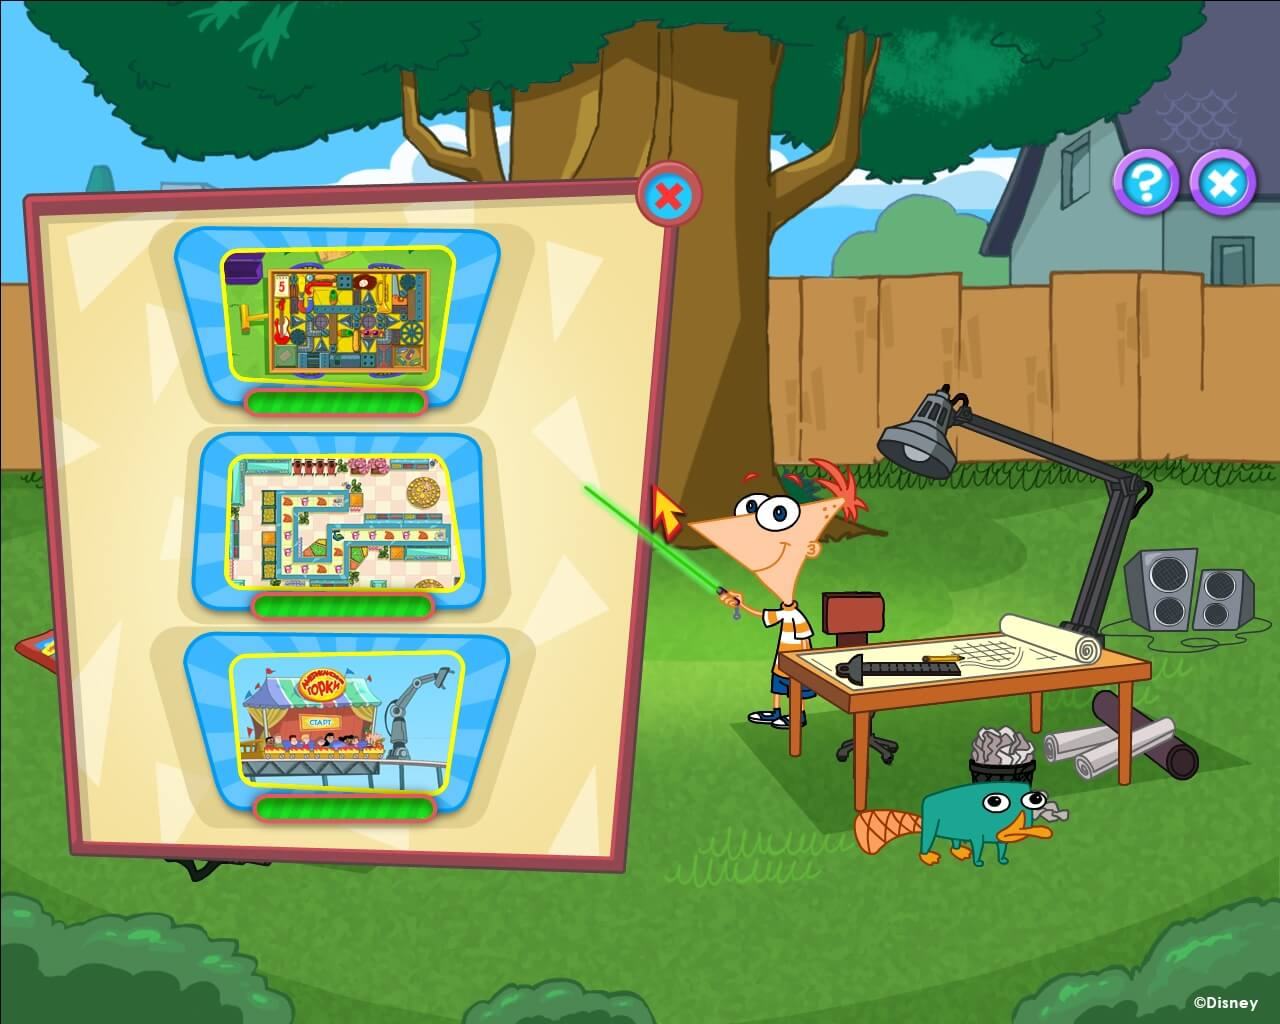 Disney Phineas & Ferb : New Inventions